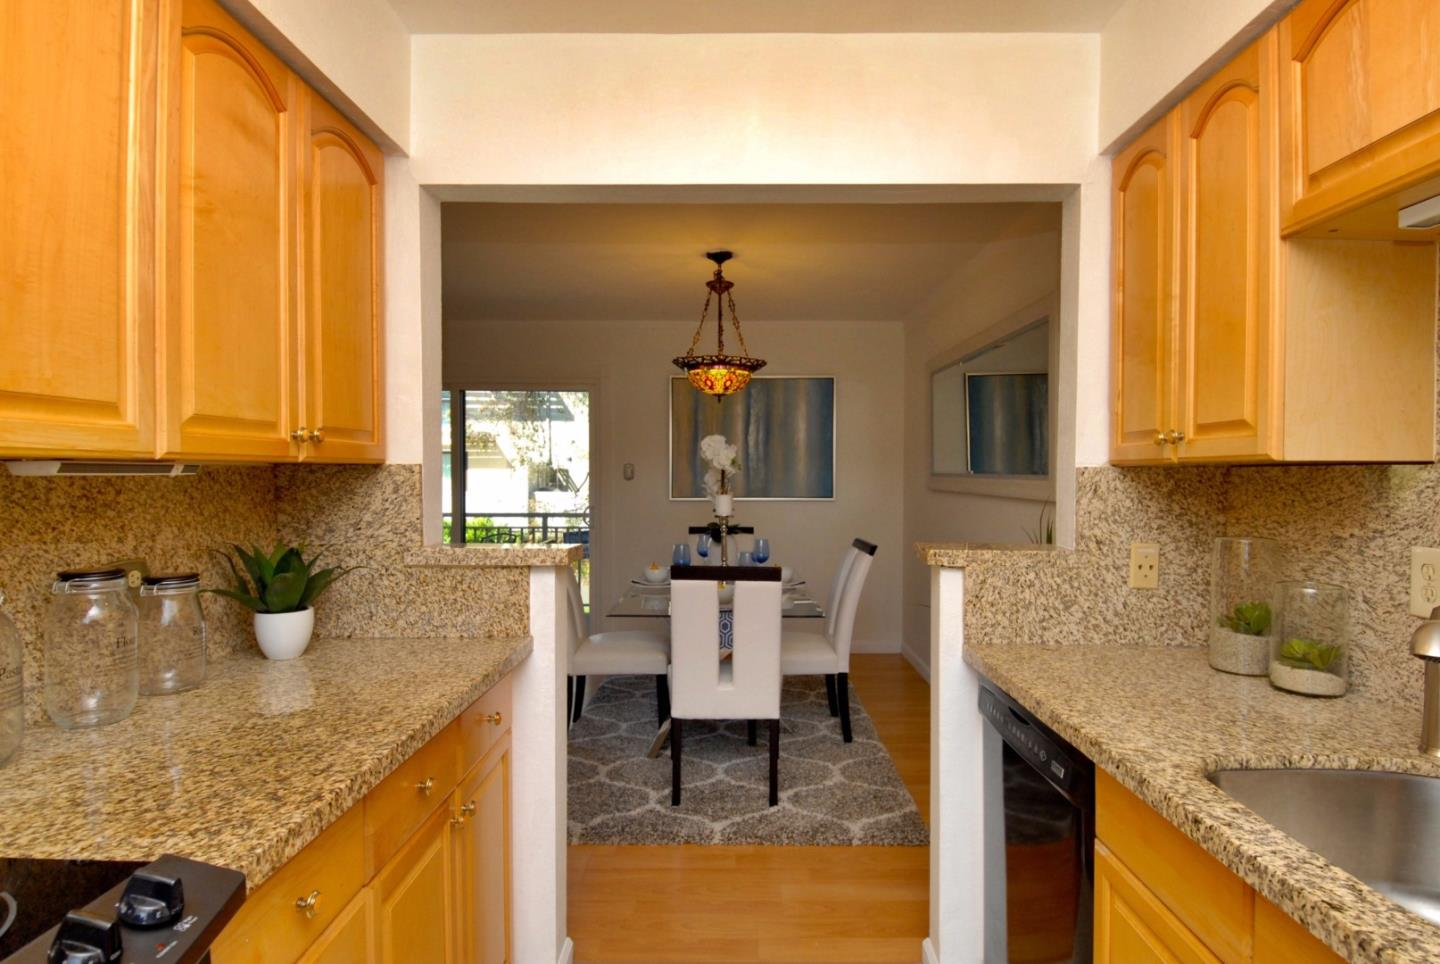 Additional photo for property listing at 3216 Admiralty Lane  Foster City, California 94404 United States